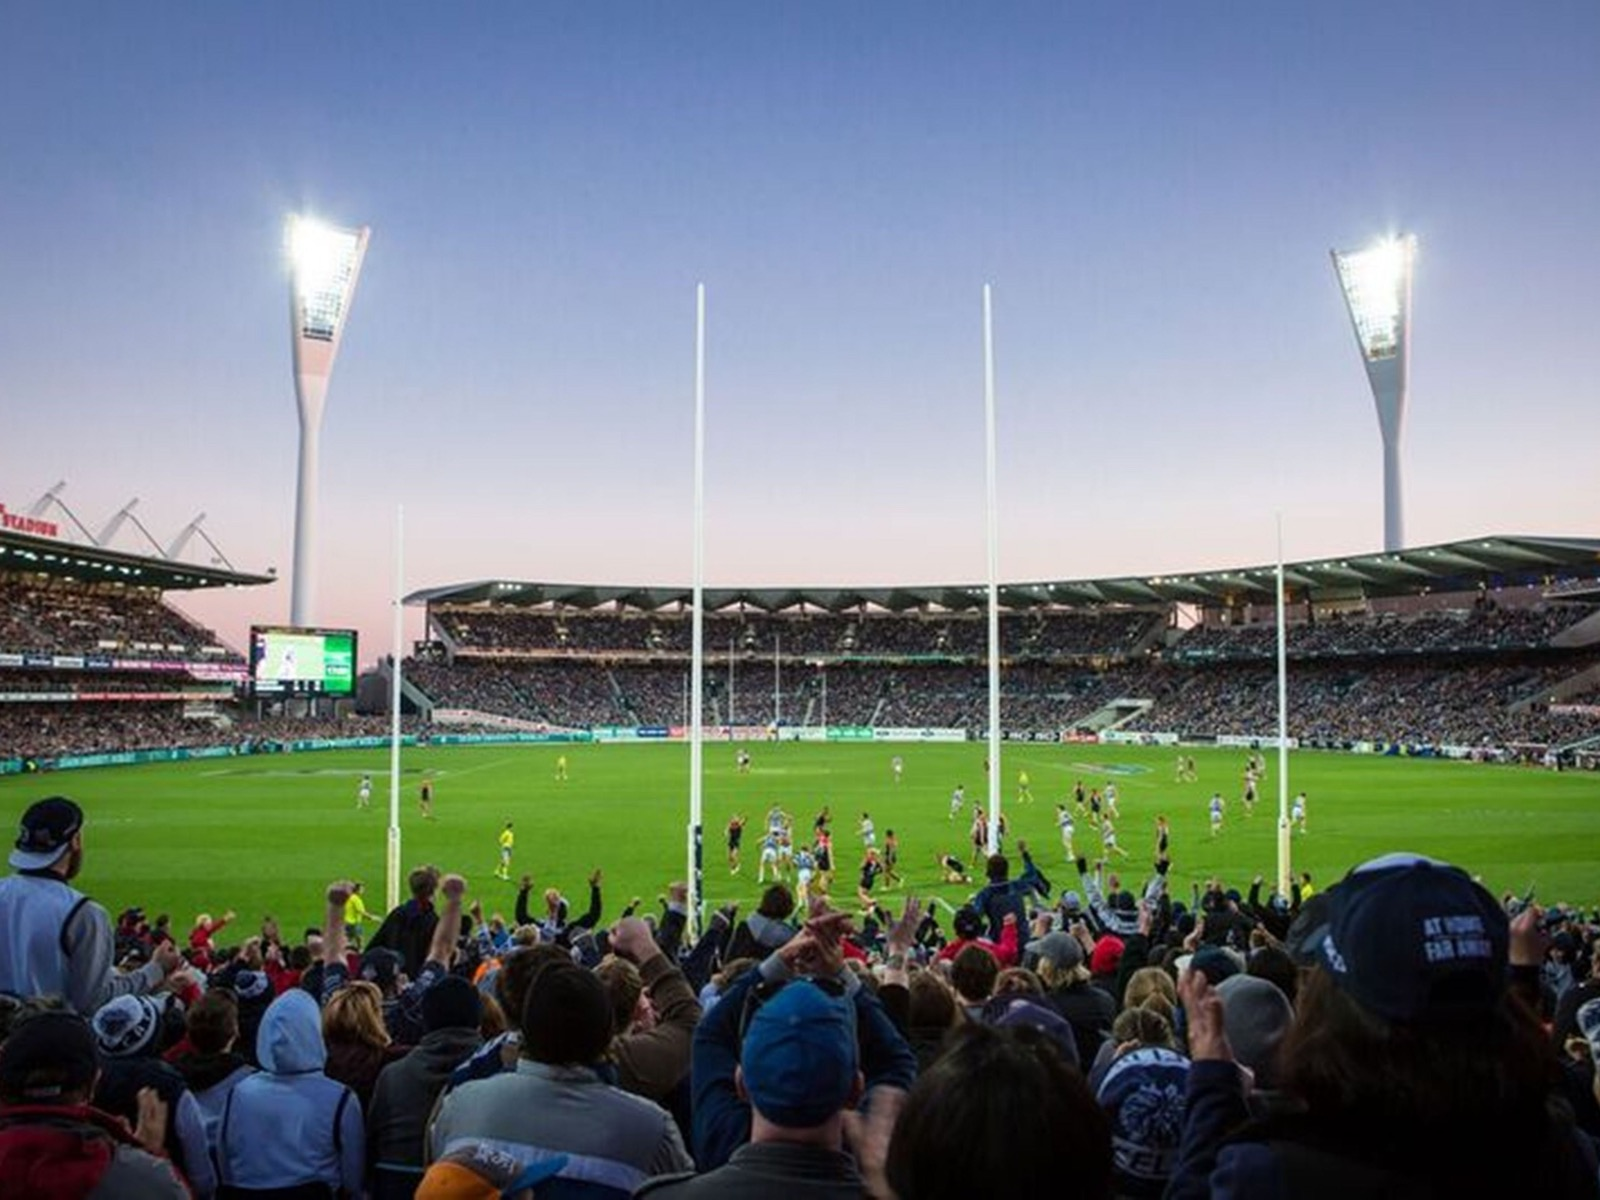 Simonds Stadium under lights